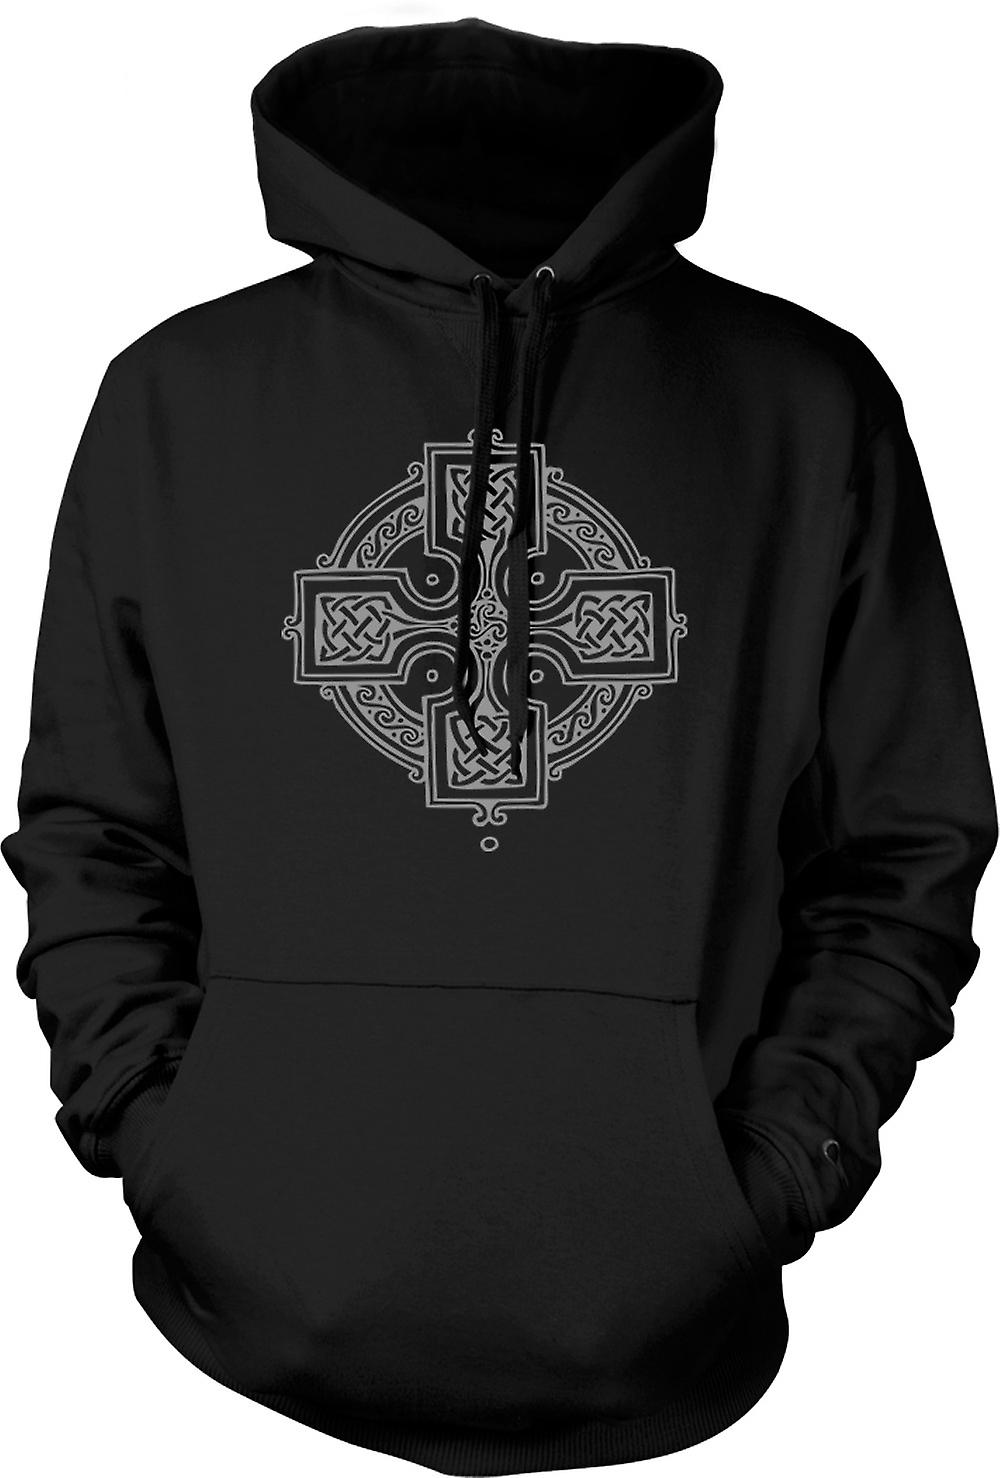 Kids Hoodie - Celtic Cross 2 - Tattoo Design